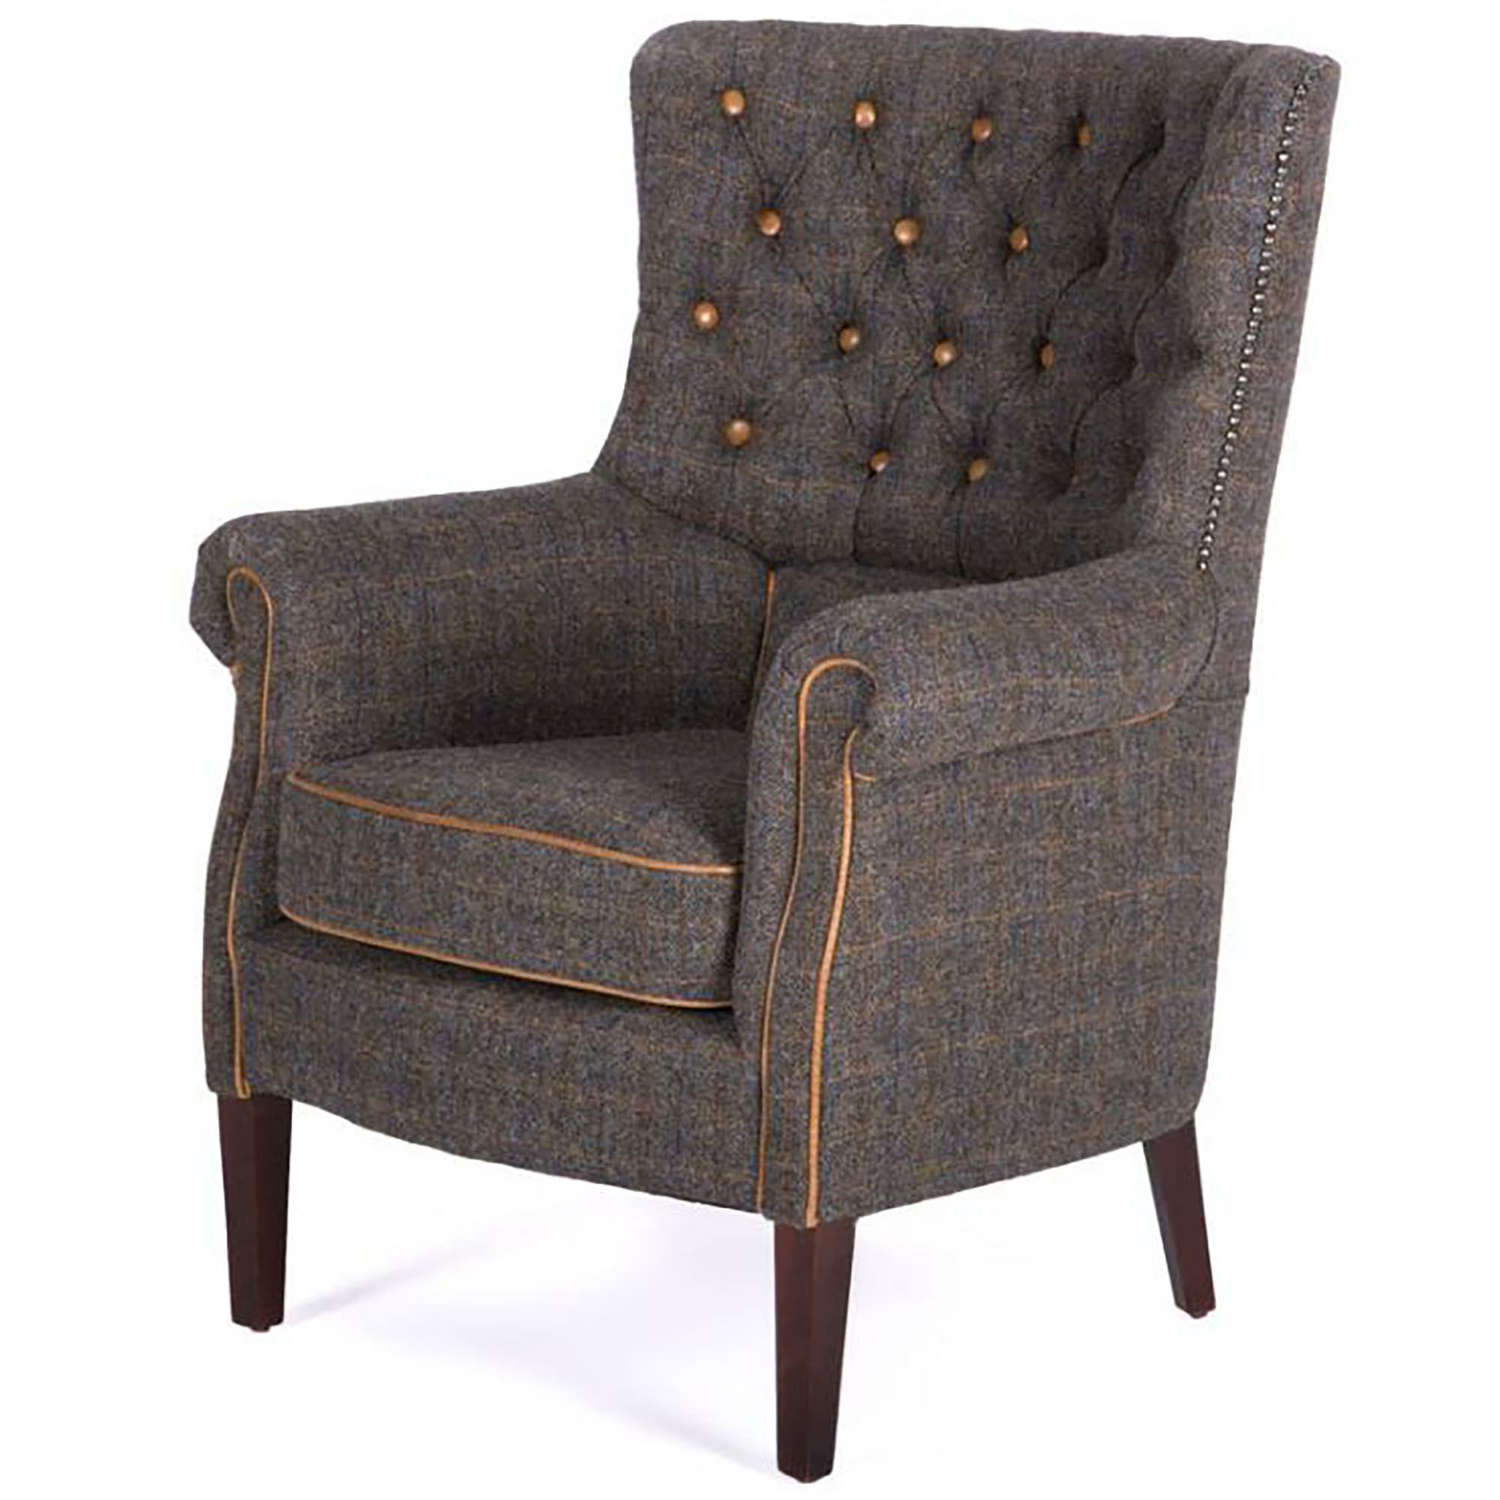 Holker Armchair in harris tweed and leather